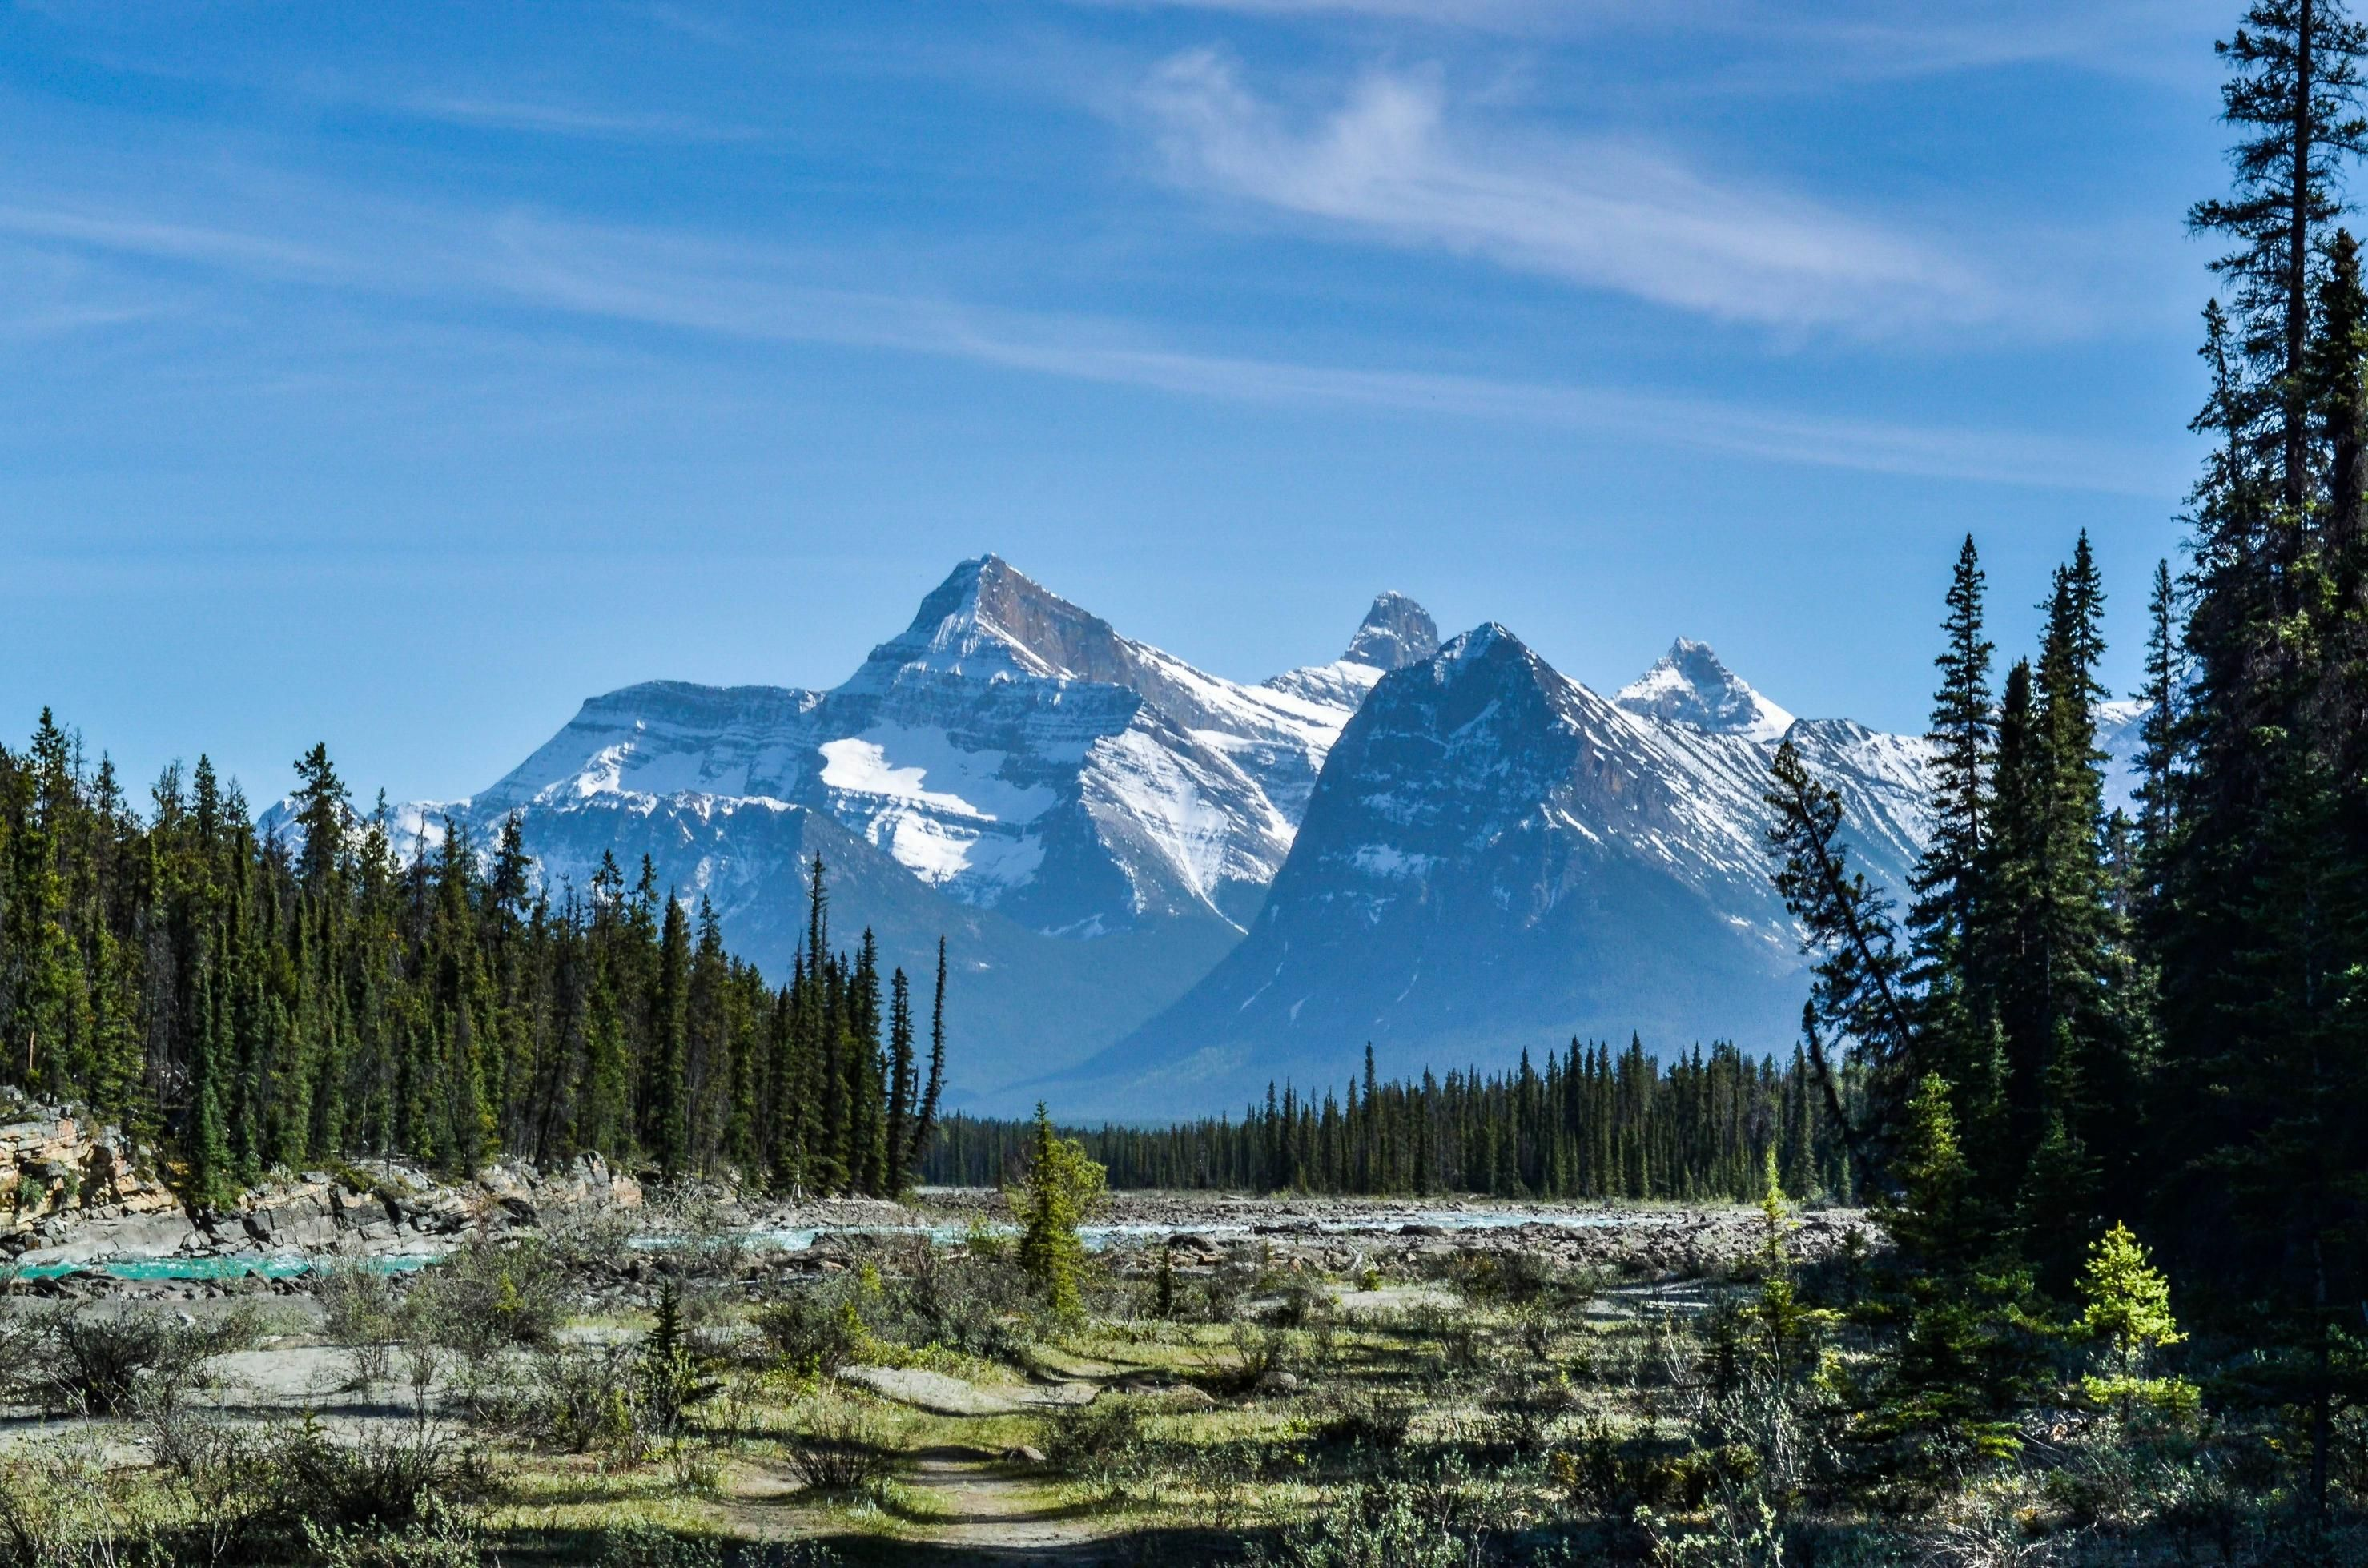 A distant mountain range as seen from athabasca falls in